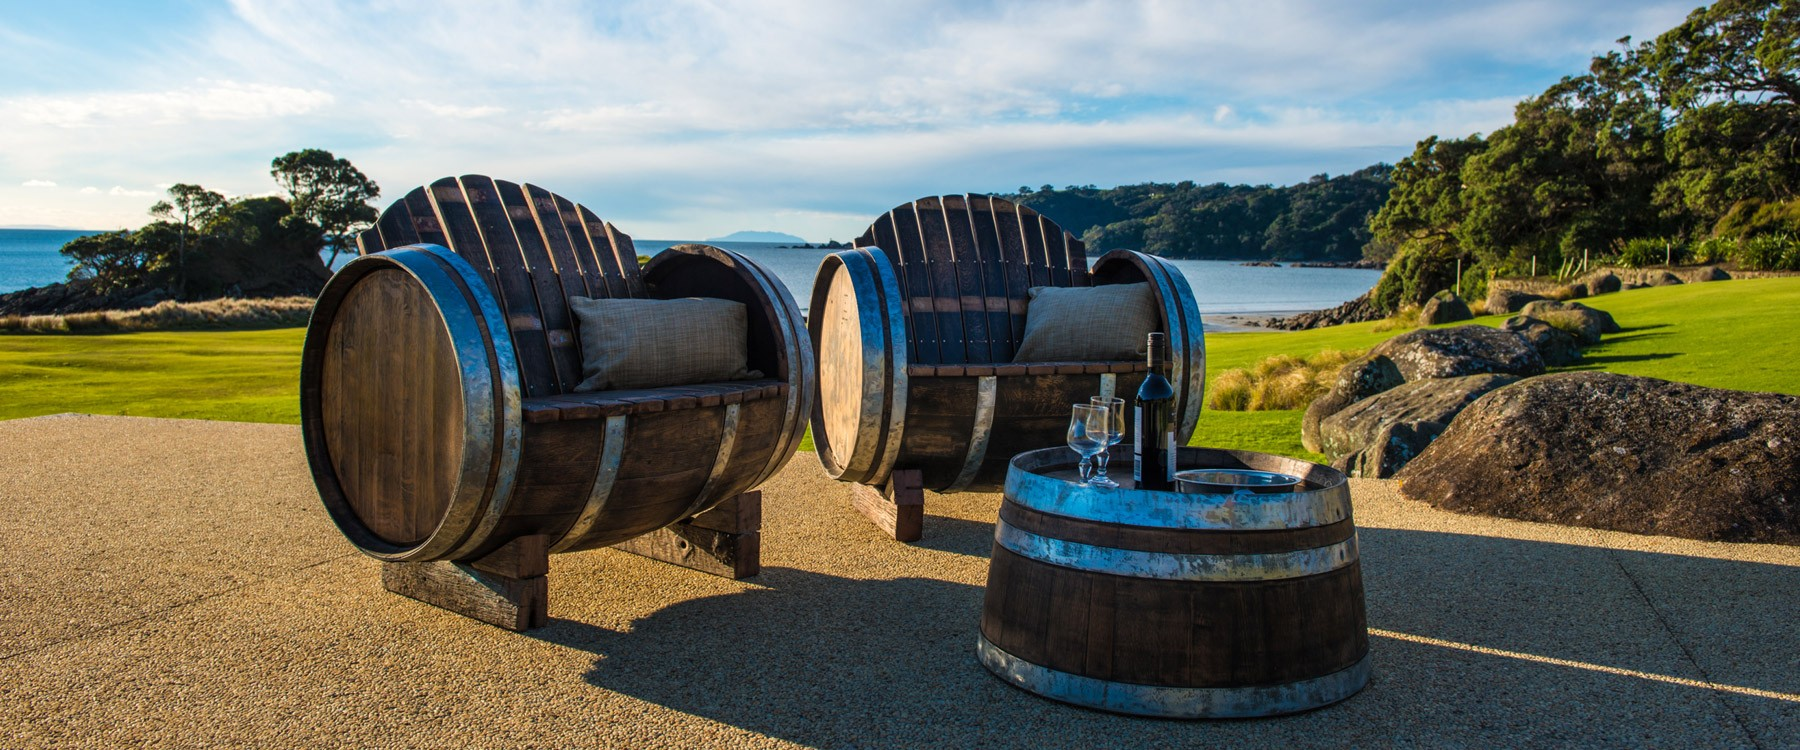 Wine-Barrel-Furniture-The-Lost-Barrel-by-Aaron-Carpenter-photogarphy-by-Peter-Rees